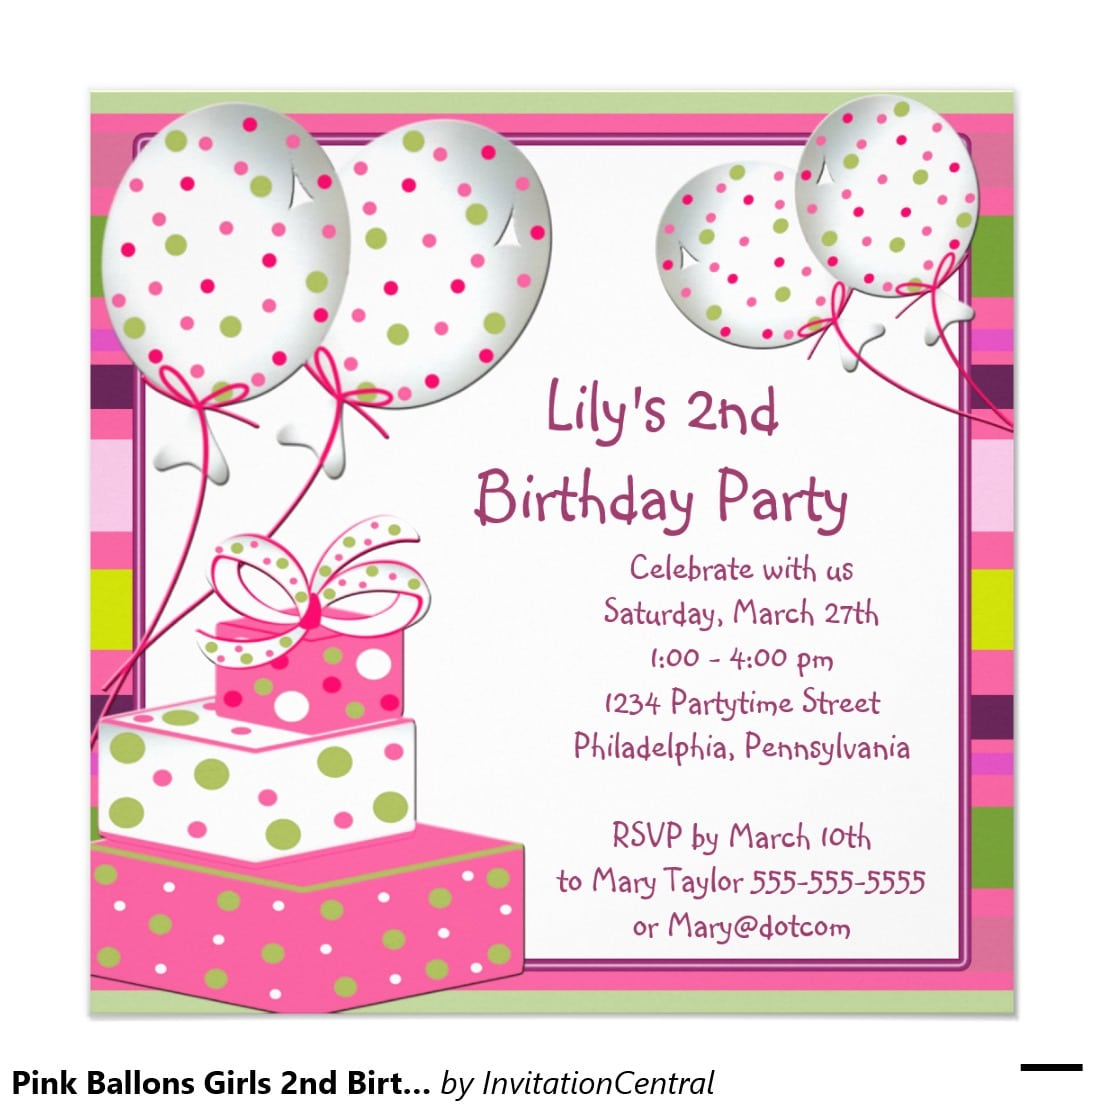 Invitation Card To Birthday Party